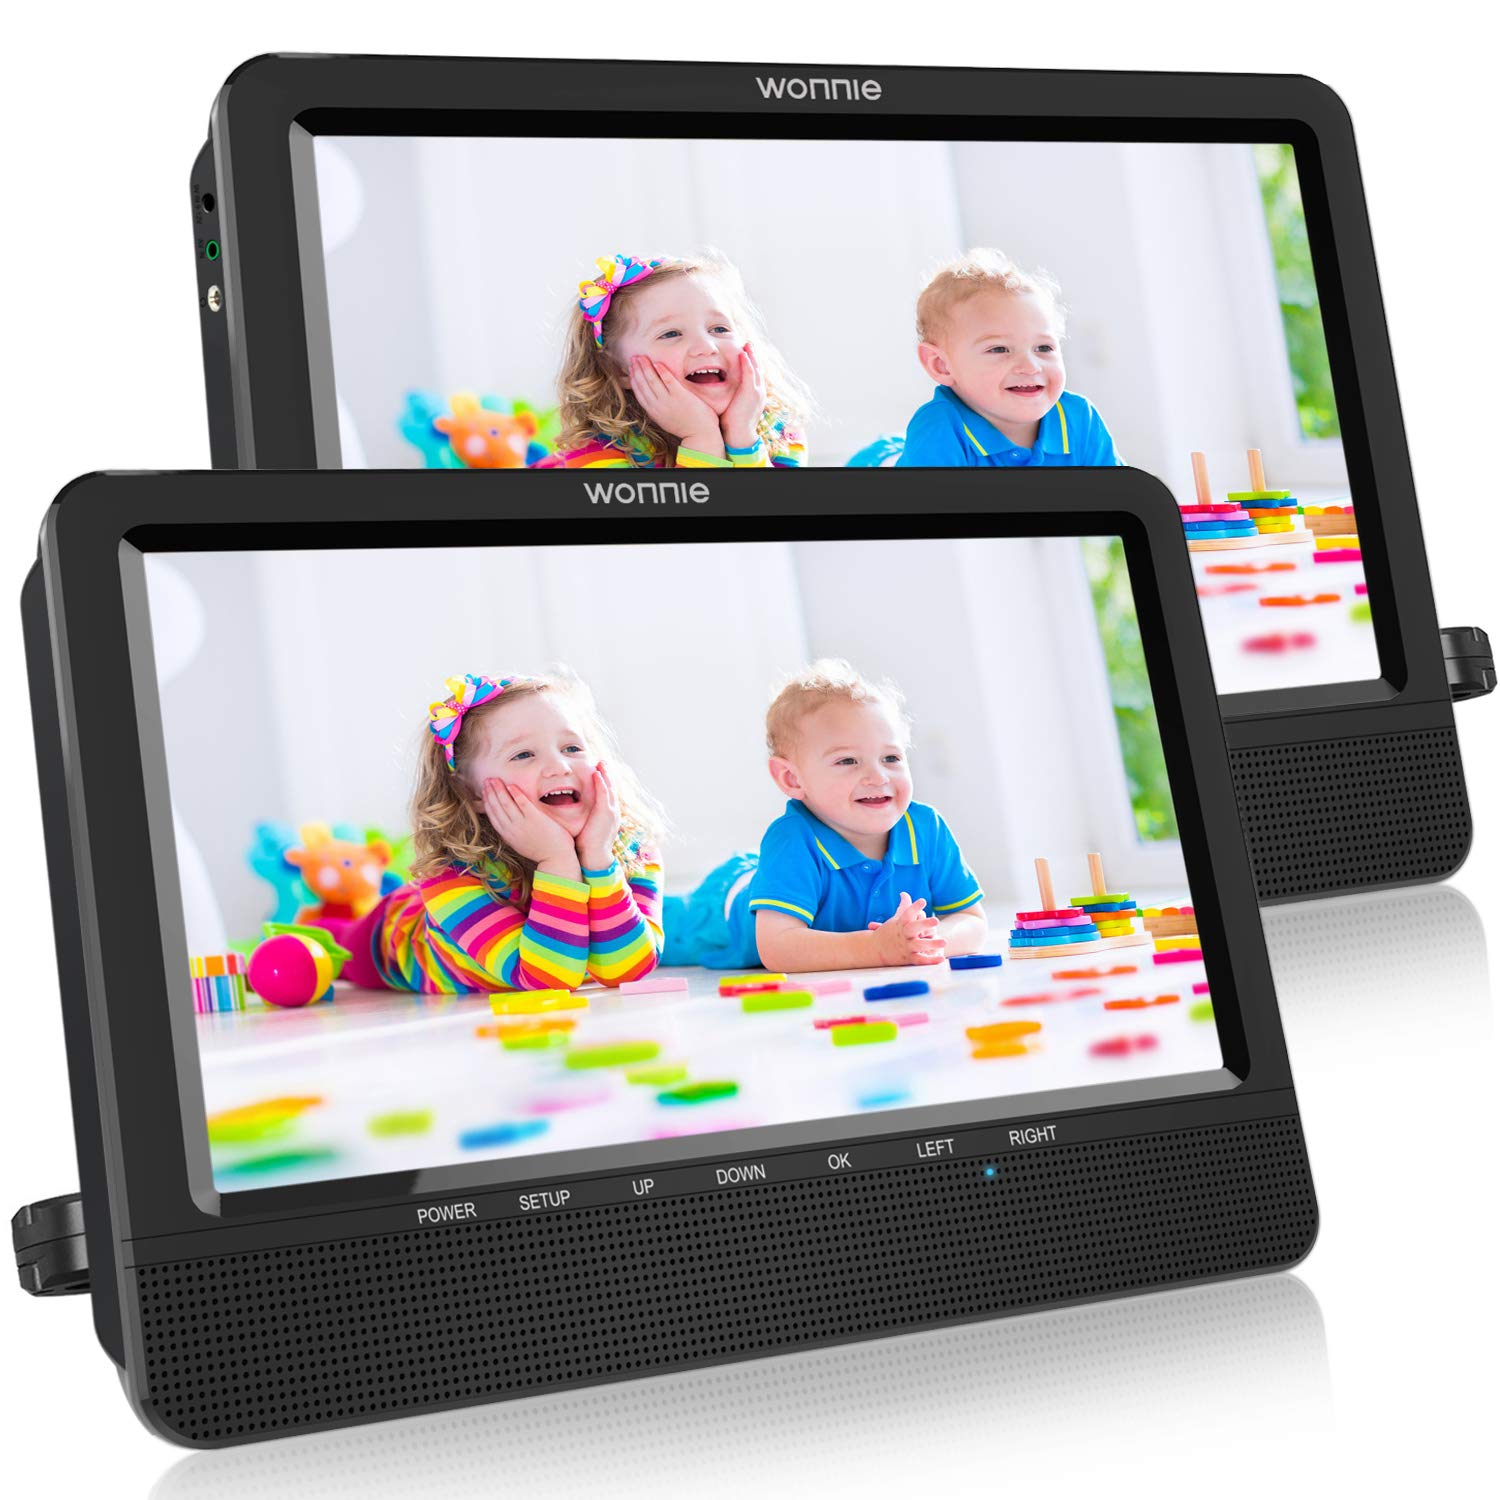 WONNIE Portable Players 1024x800 Rechargeable